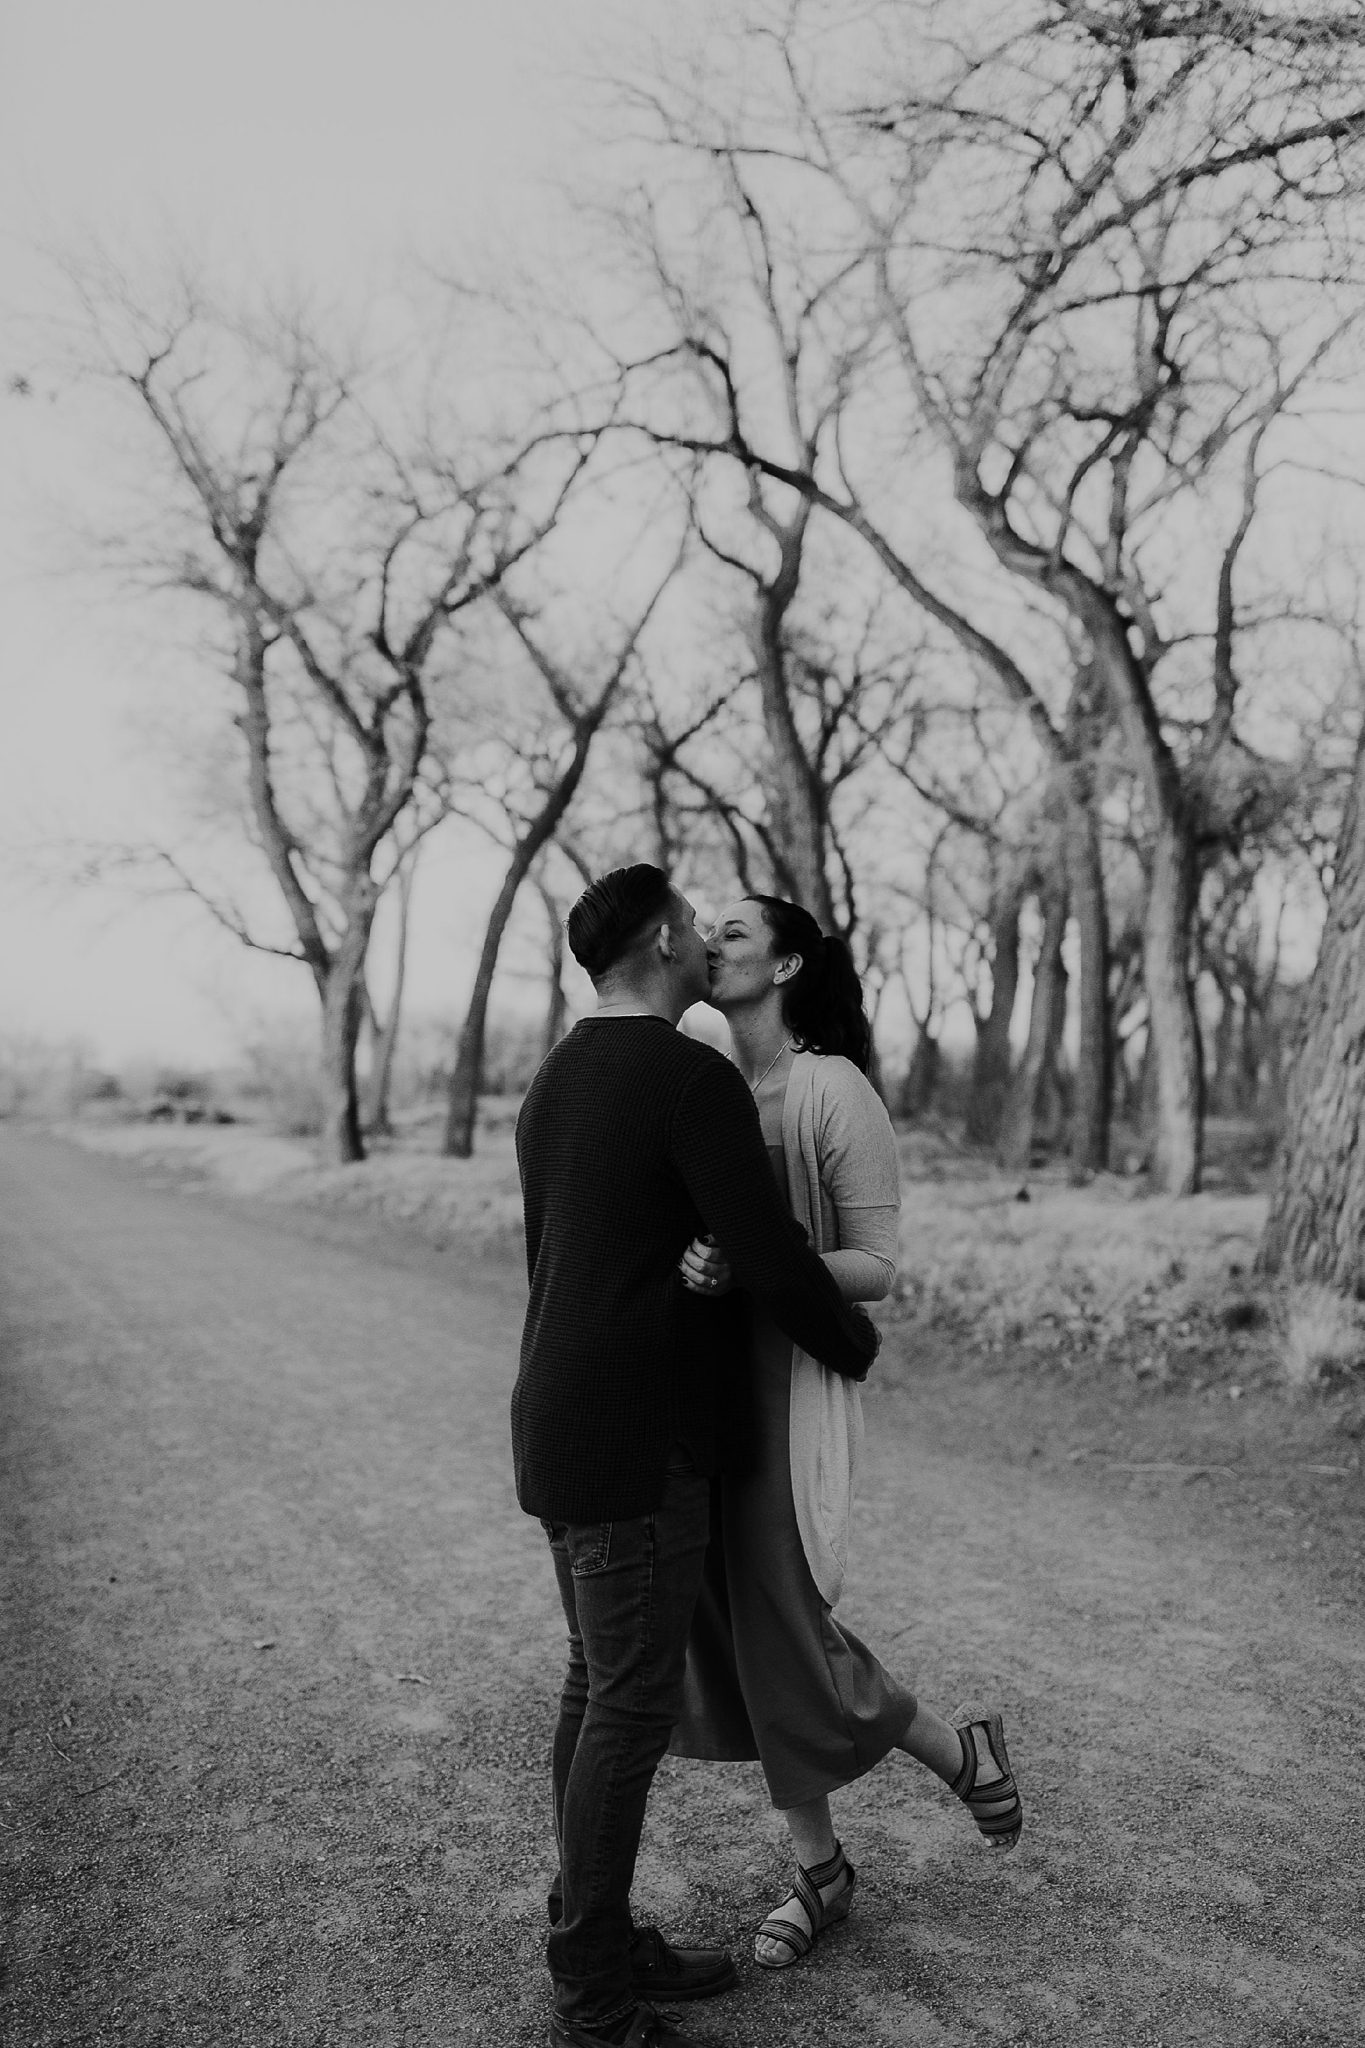 Alicia+lucia+photography+-+albuquerque+wedding+photographer+-+santa+fe+wedding+photography+-+new+mexico+wedding+photographer+-+new+mexico+wedding+-+engagement+-+new+mexico+engagemnt+-+outdoor+engagement_0023.jpg